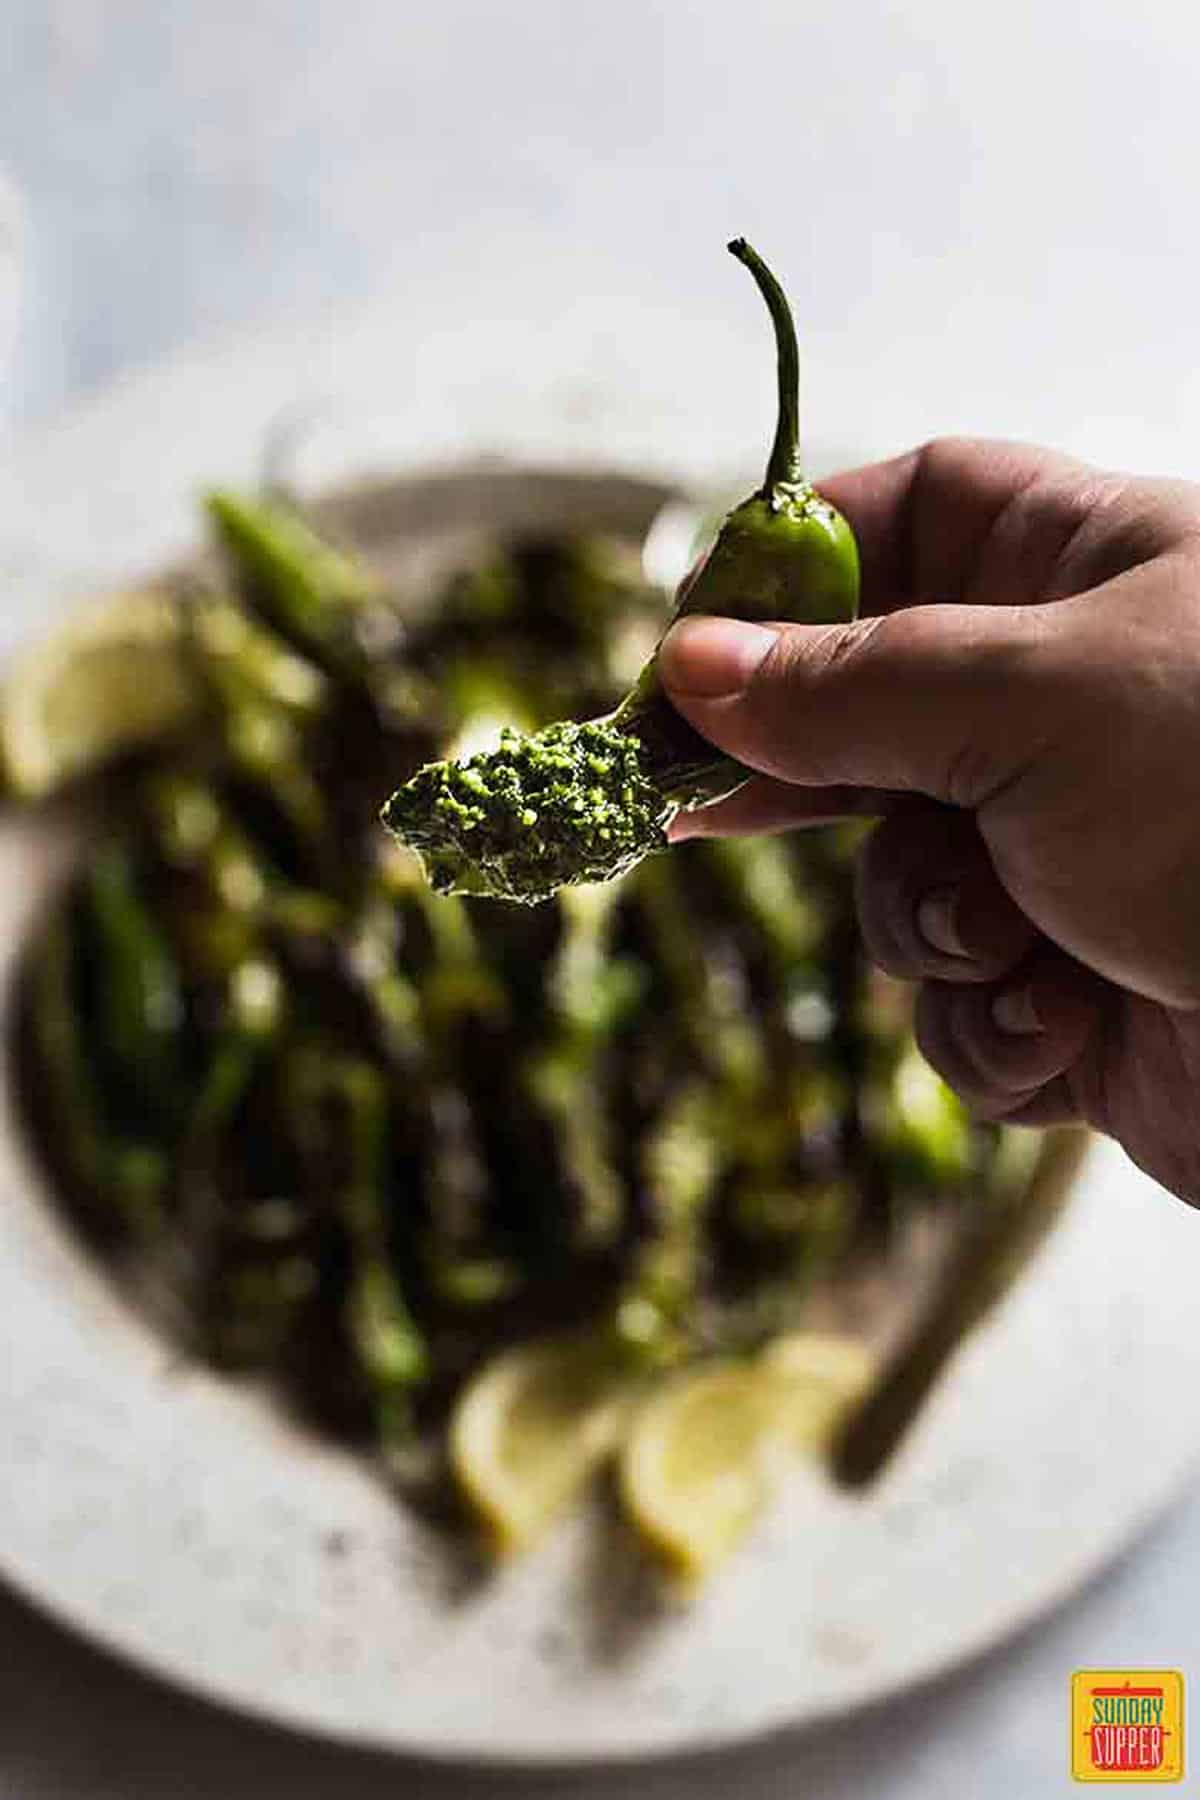 Holding up a charred shishito pepper dipped in citrus pesto dip